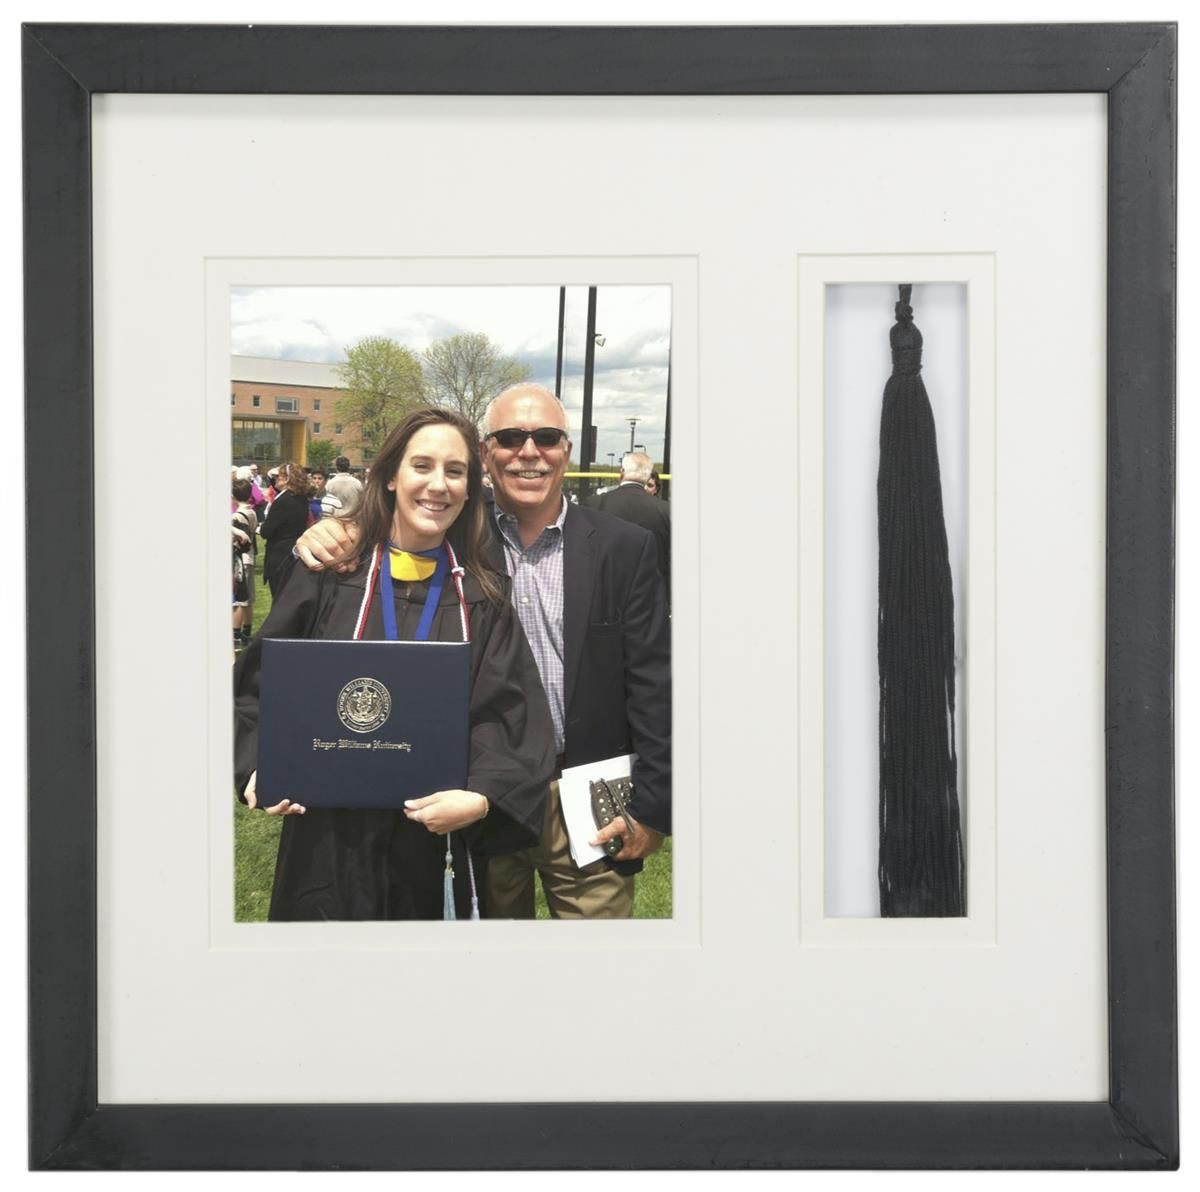 5 x 7 Graduation Picture Frame for Wall, Matted with Tassel Holder ...